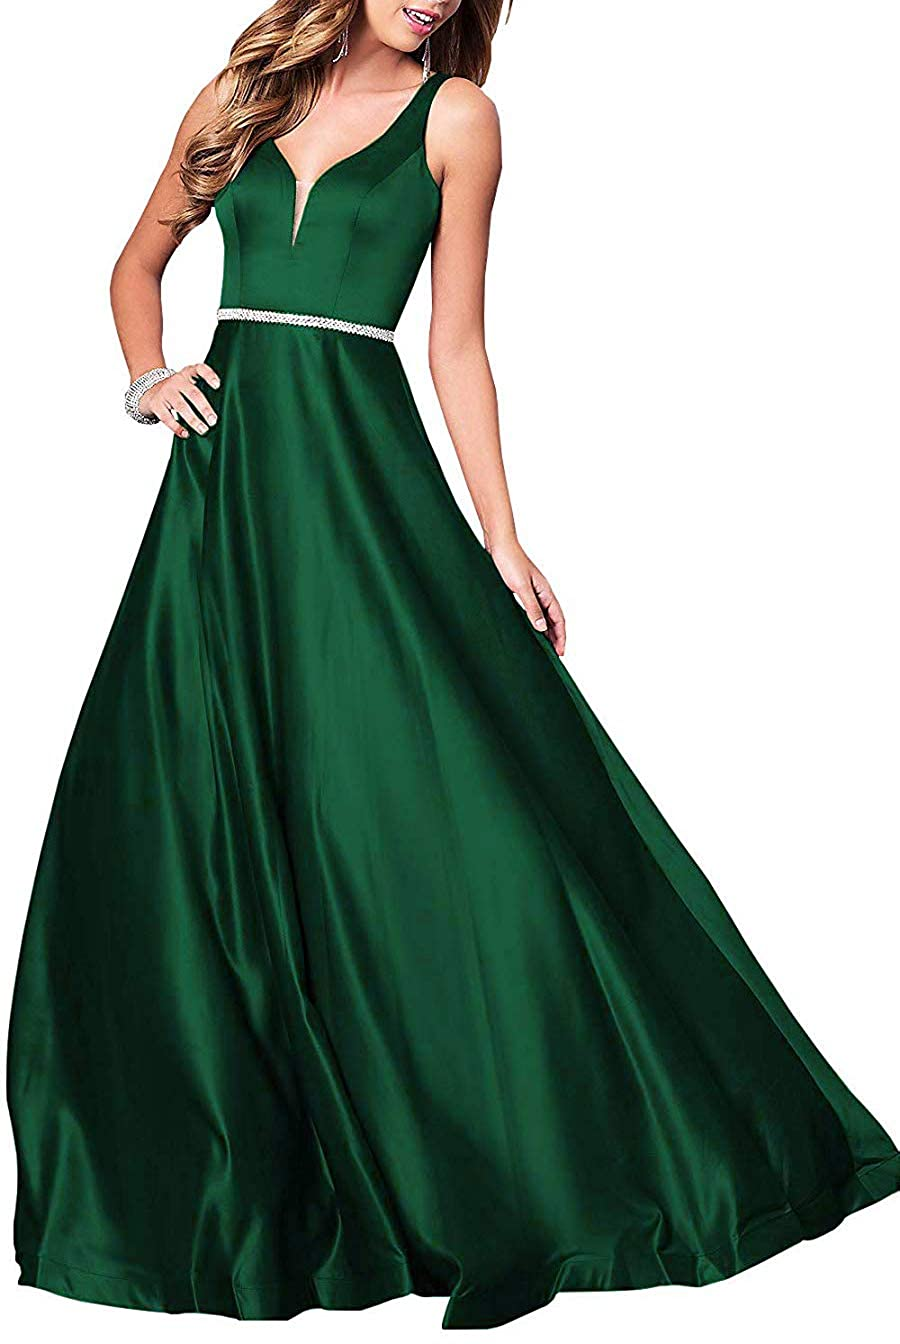 Dark Green Deep VNeck Long Satin Prom Dress with Beaded Pocket Formal Evening Party Gown